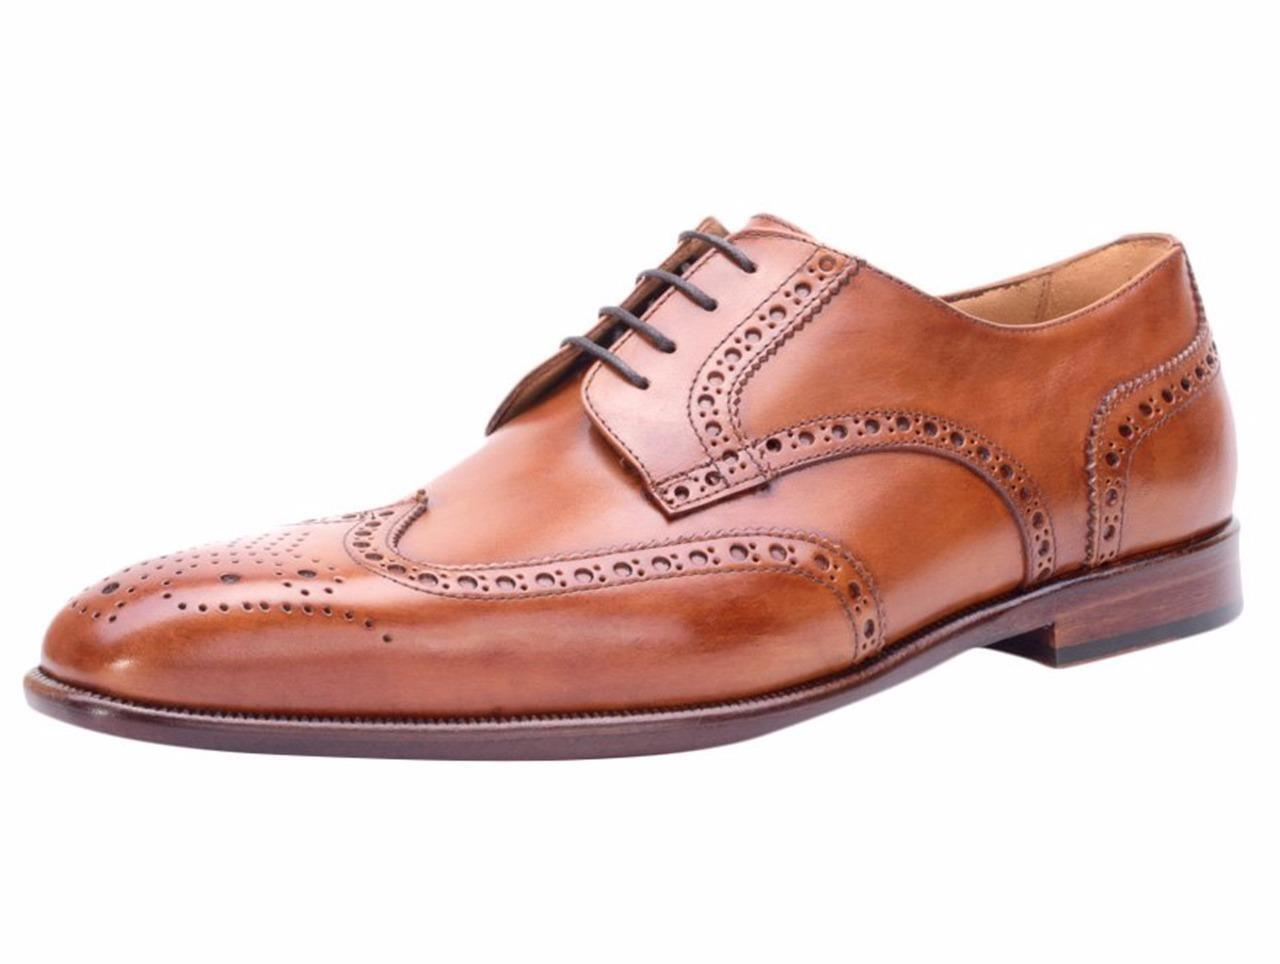 New in Box- Curatore Abbott Siena Wingtip Derby Leather Oxford Size 13 (46)